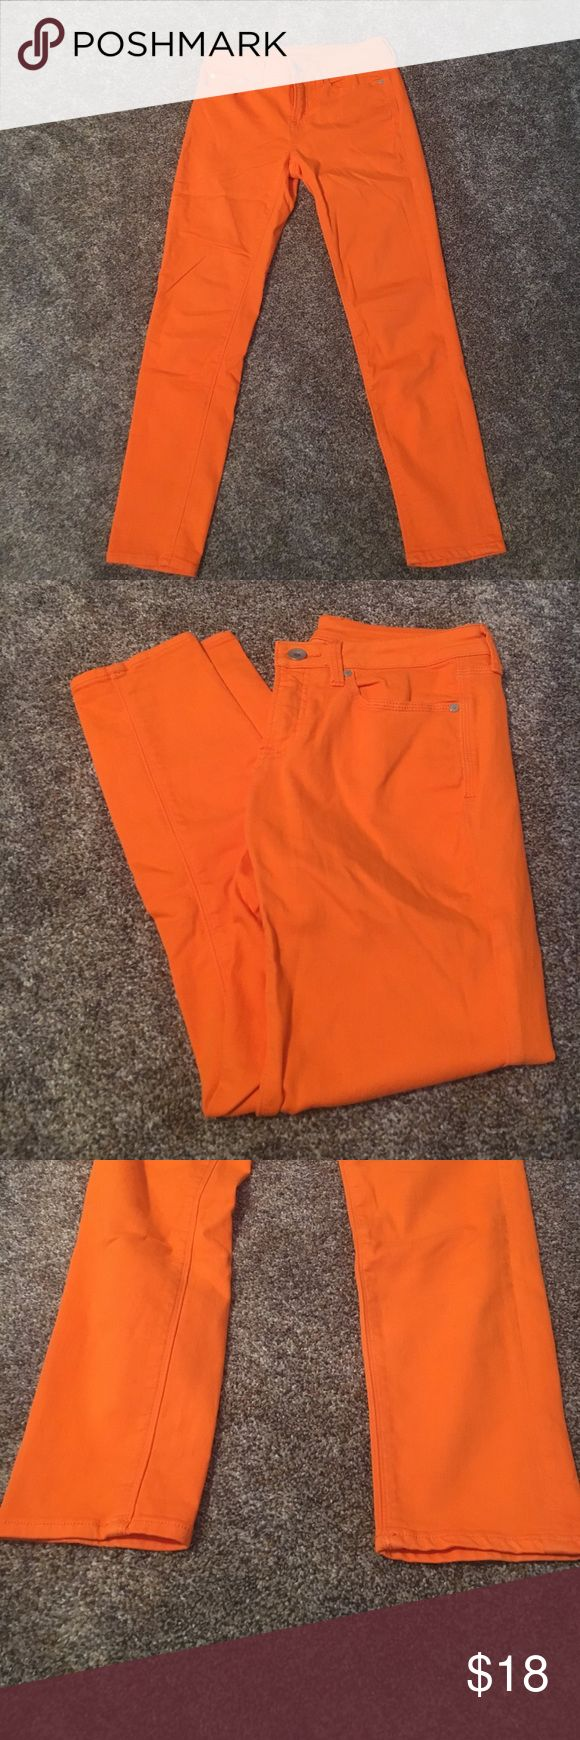 Bright Orange Skinny Jeans Bright orange skinny ankle jeans from JCPenneys are in excellent condition. High stretch denim. Size 29 (8). 54% cotton, 27% polyester, 18% rayon, 1% spandex. jcpenney Jeans